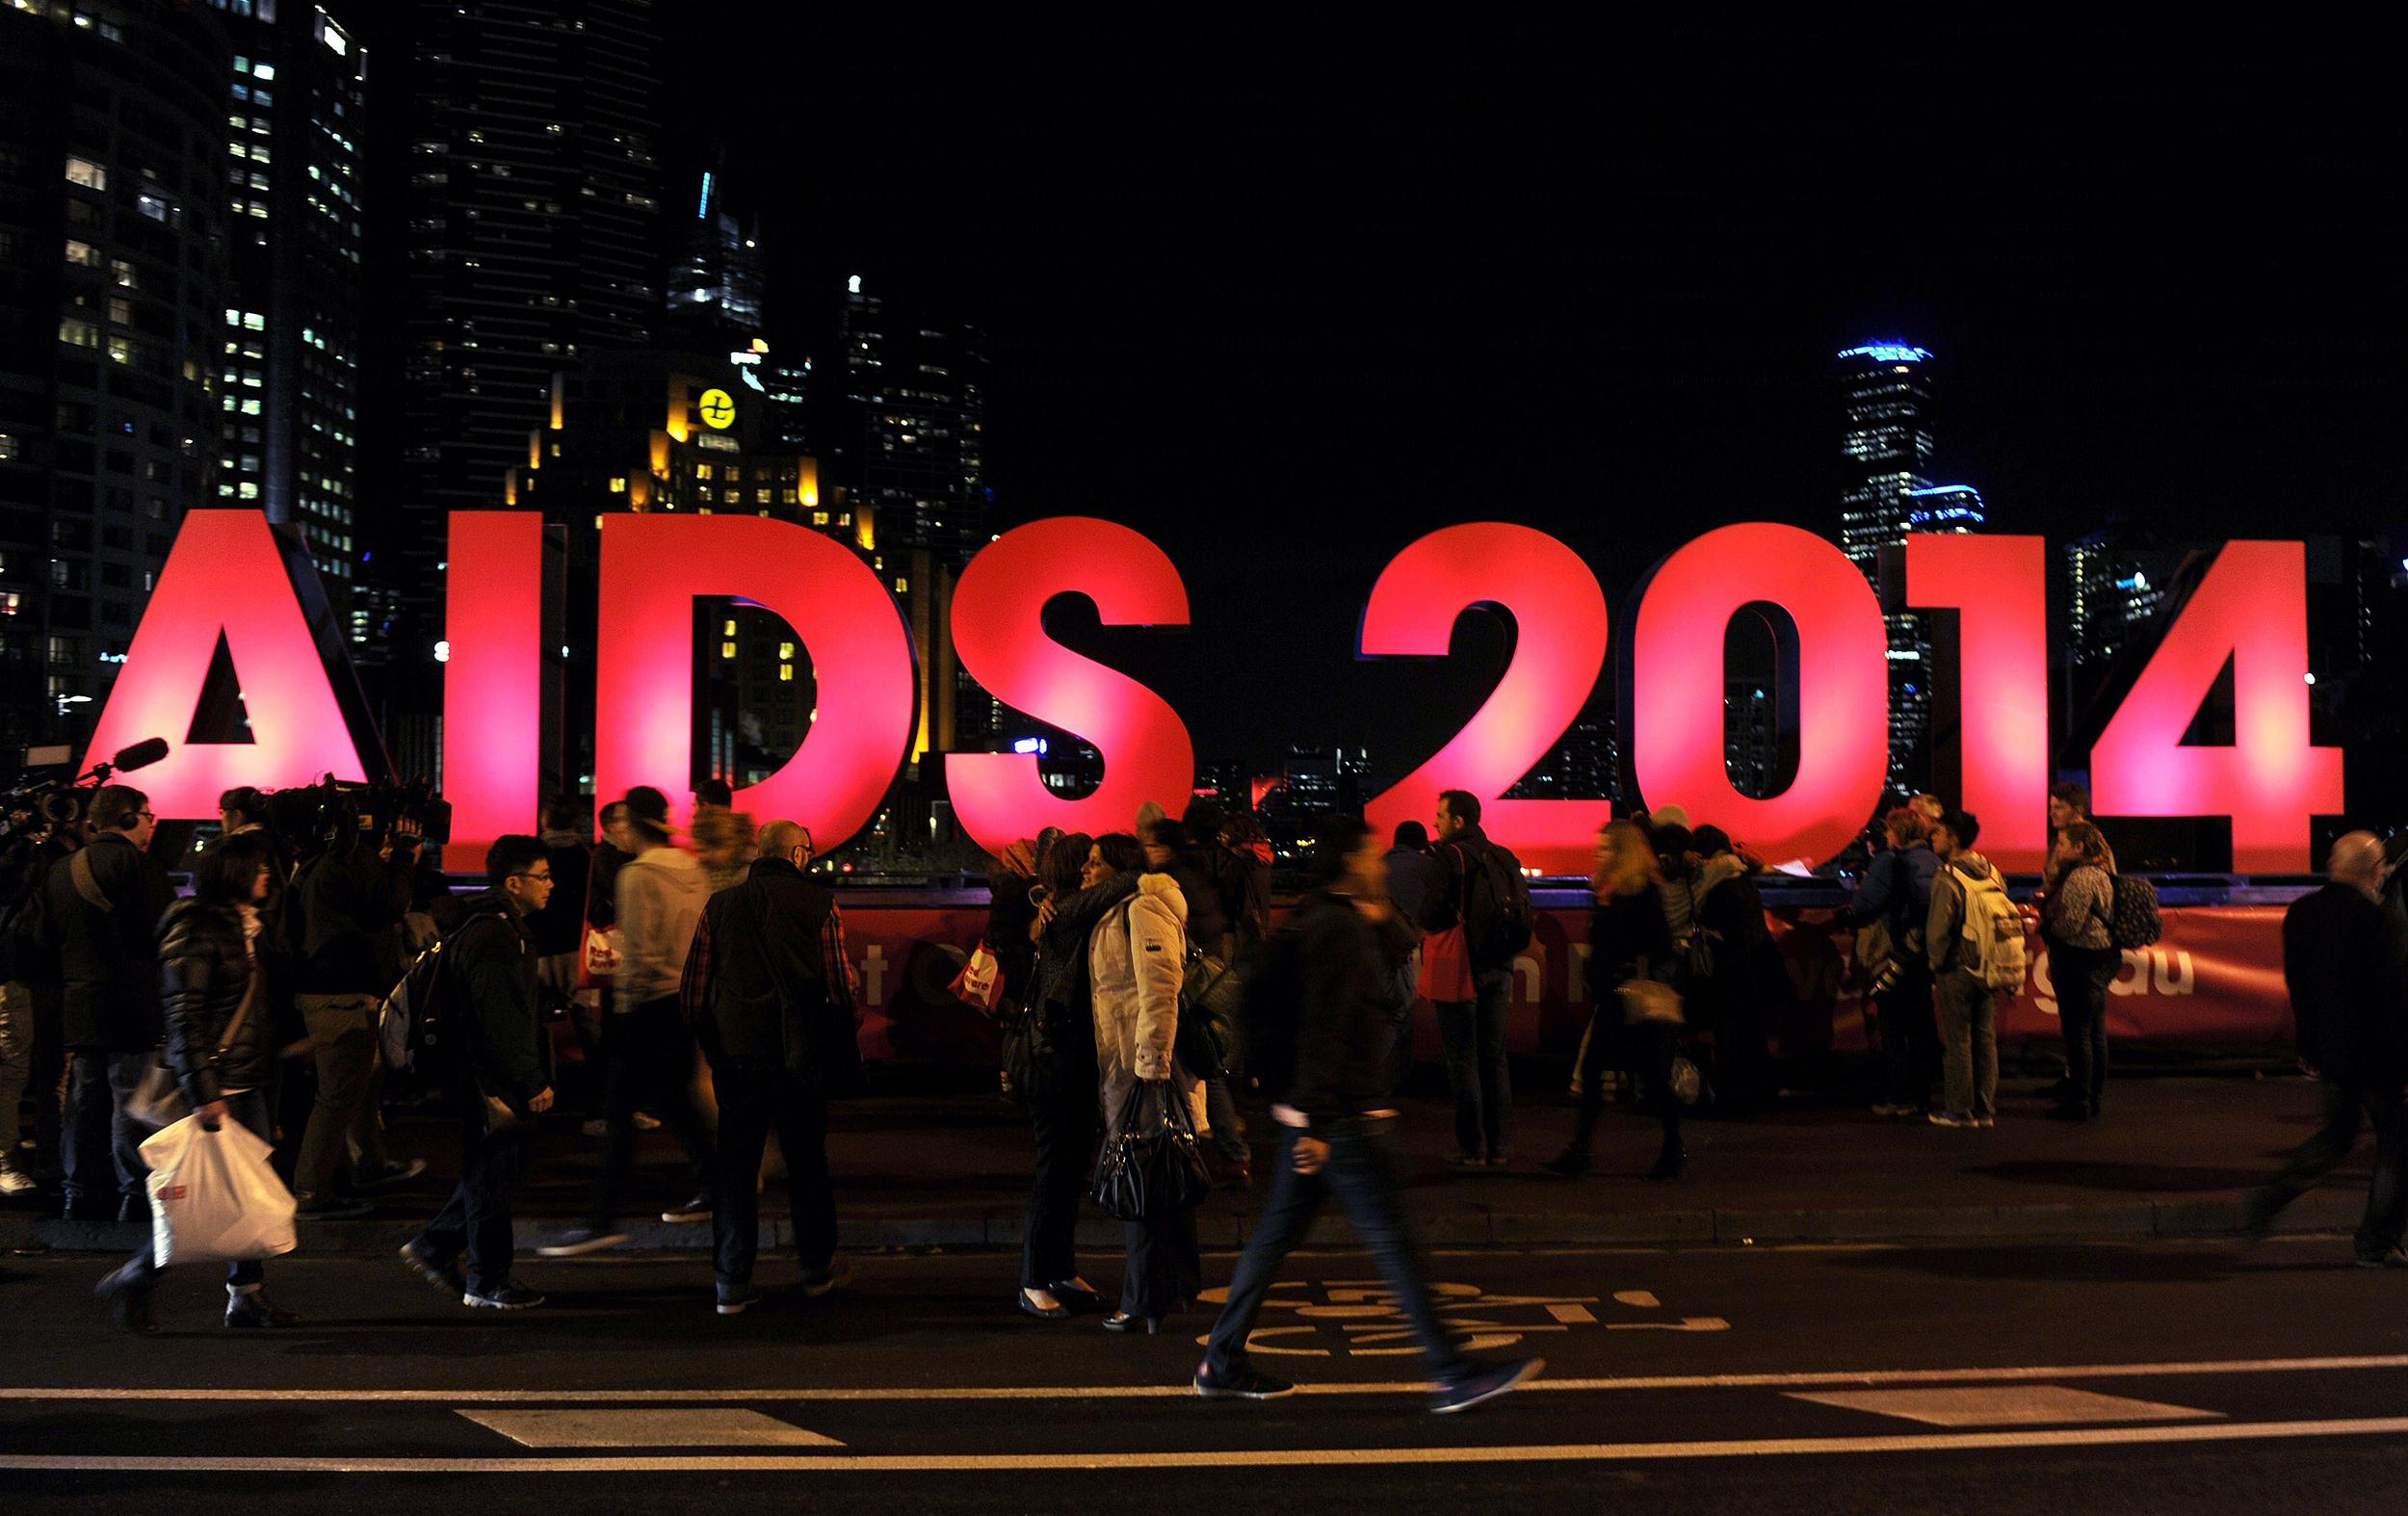 Image: People gather next to a sign reading AIDS 2014 in Melbourne on July 18 after news that downed Malaysia Airlines flight MH17 was carrying many participants headed to the 20th International AIDS Conference planned this weekend in the Australian city.